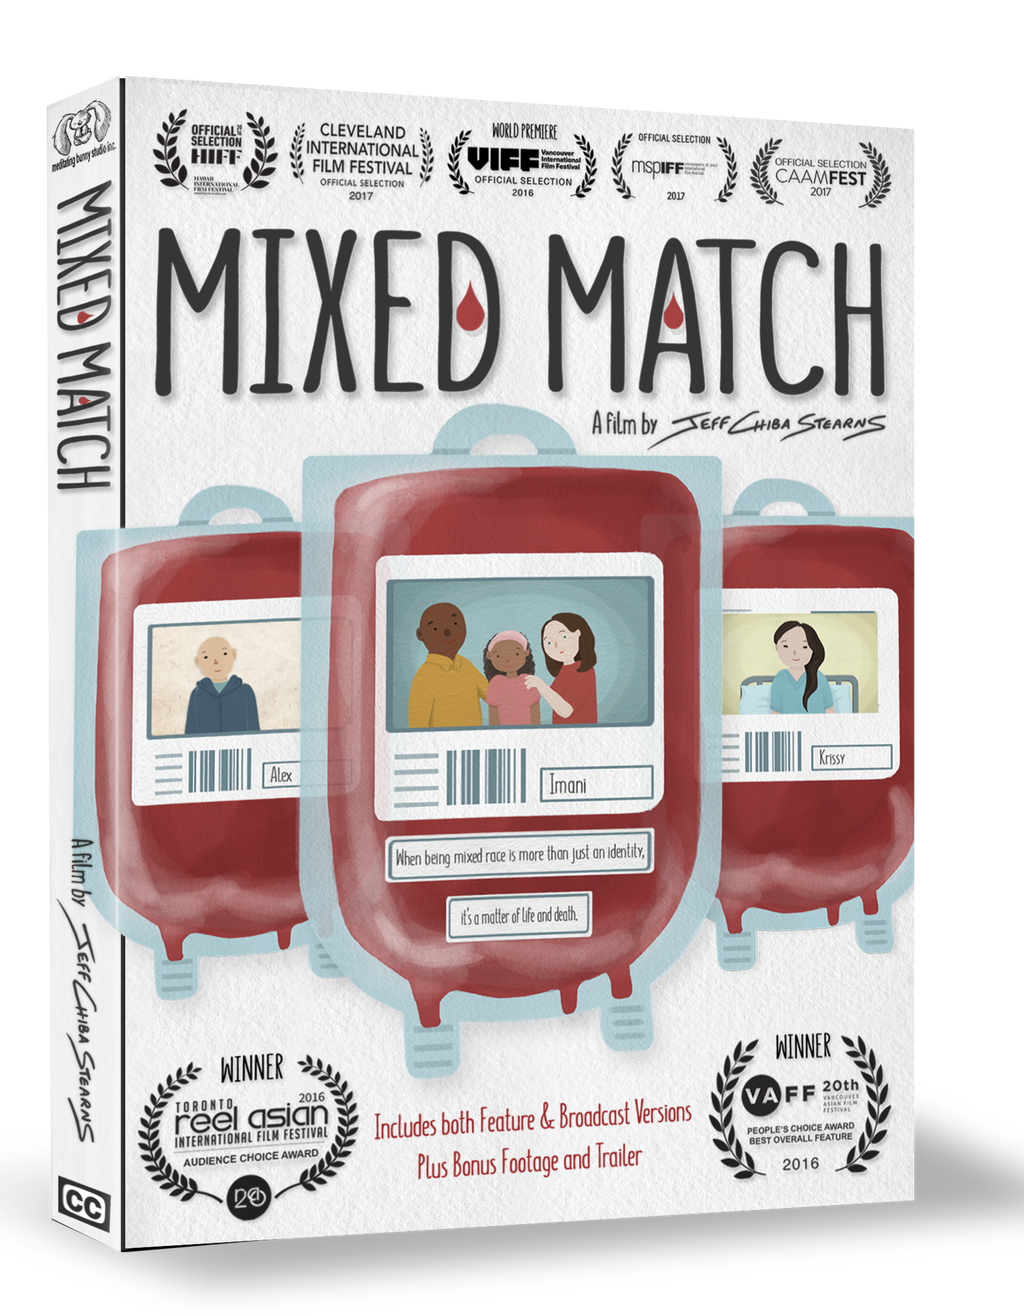 Mixed Match (screening)